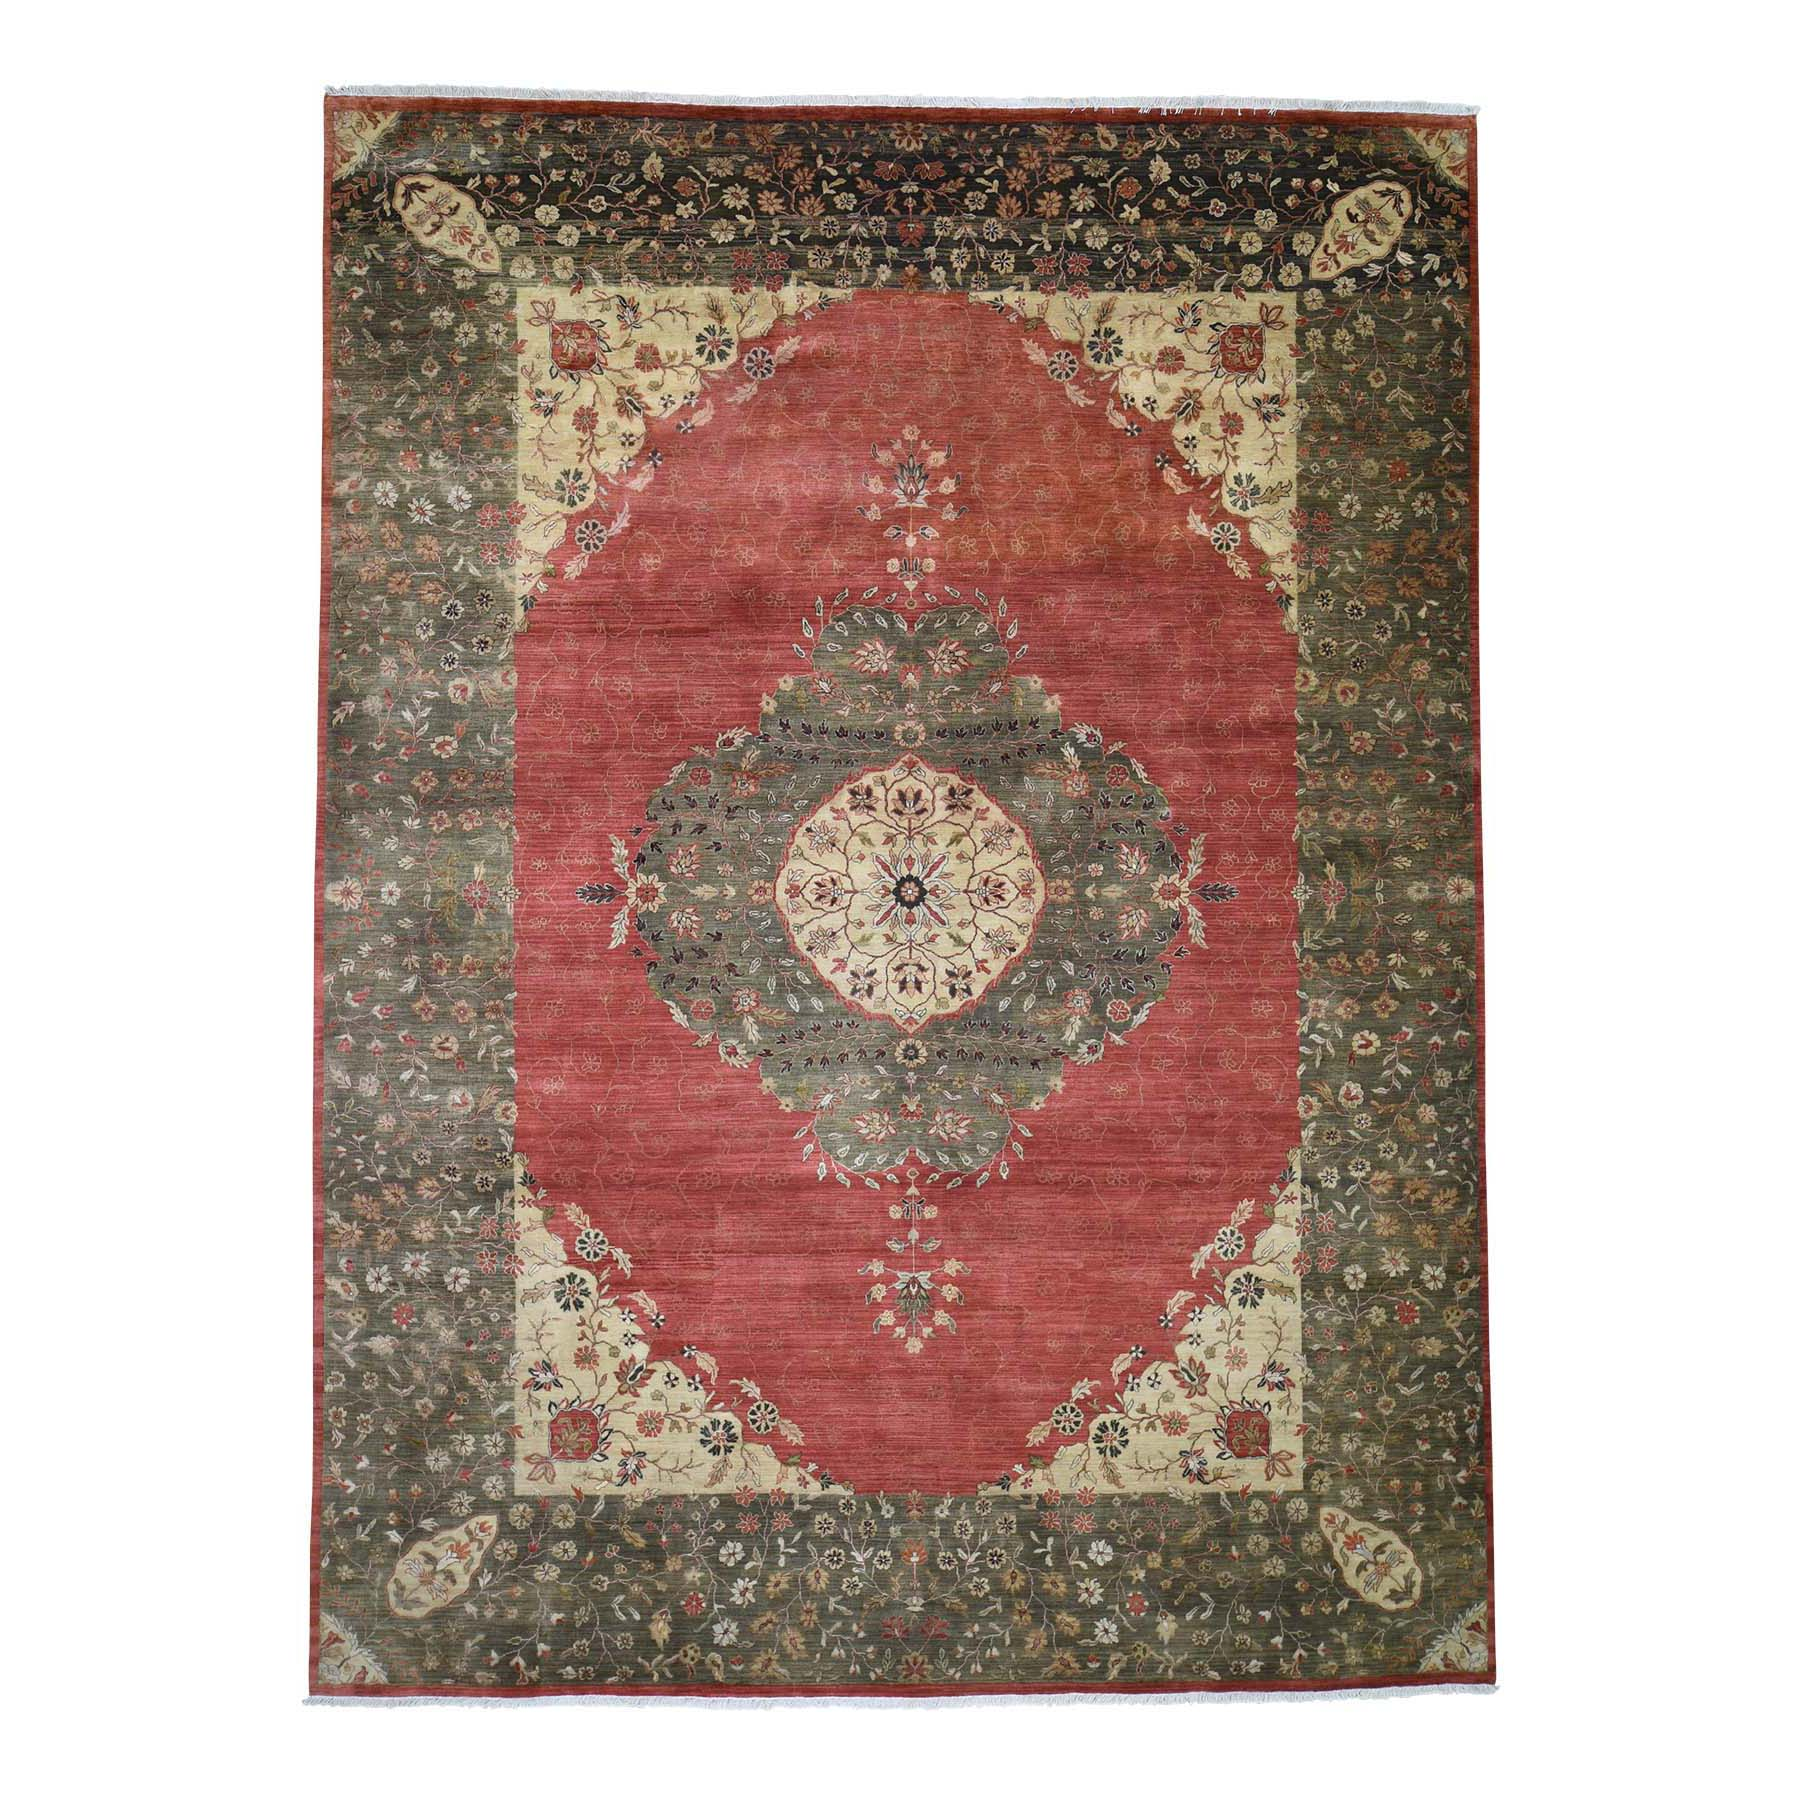 Pirniakan Collection Hand Knotted Red Rug No: 190624